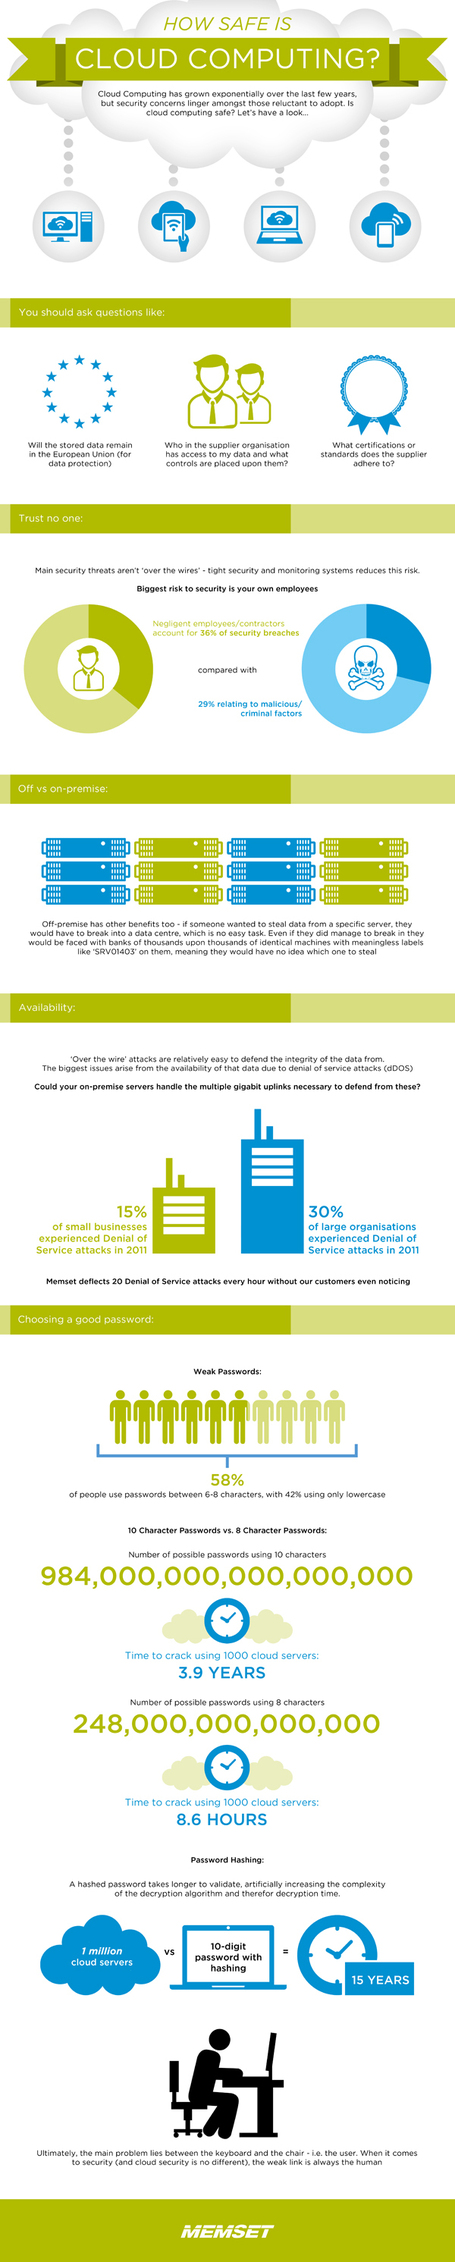 INFOGRAPHIC: How Safe is The Cloud? | Social Media (network, technology, blog, community, virtual reality, etc...) | Scoop.it